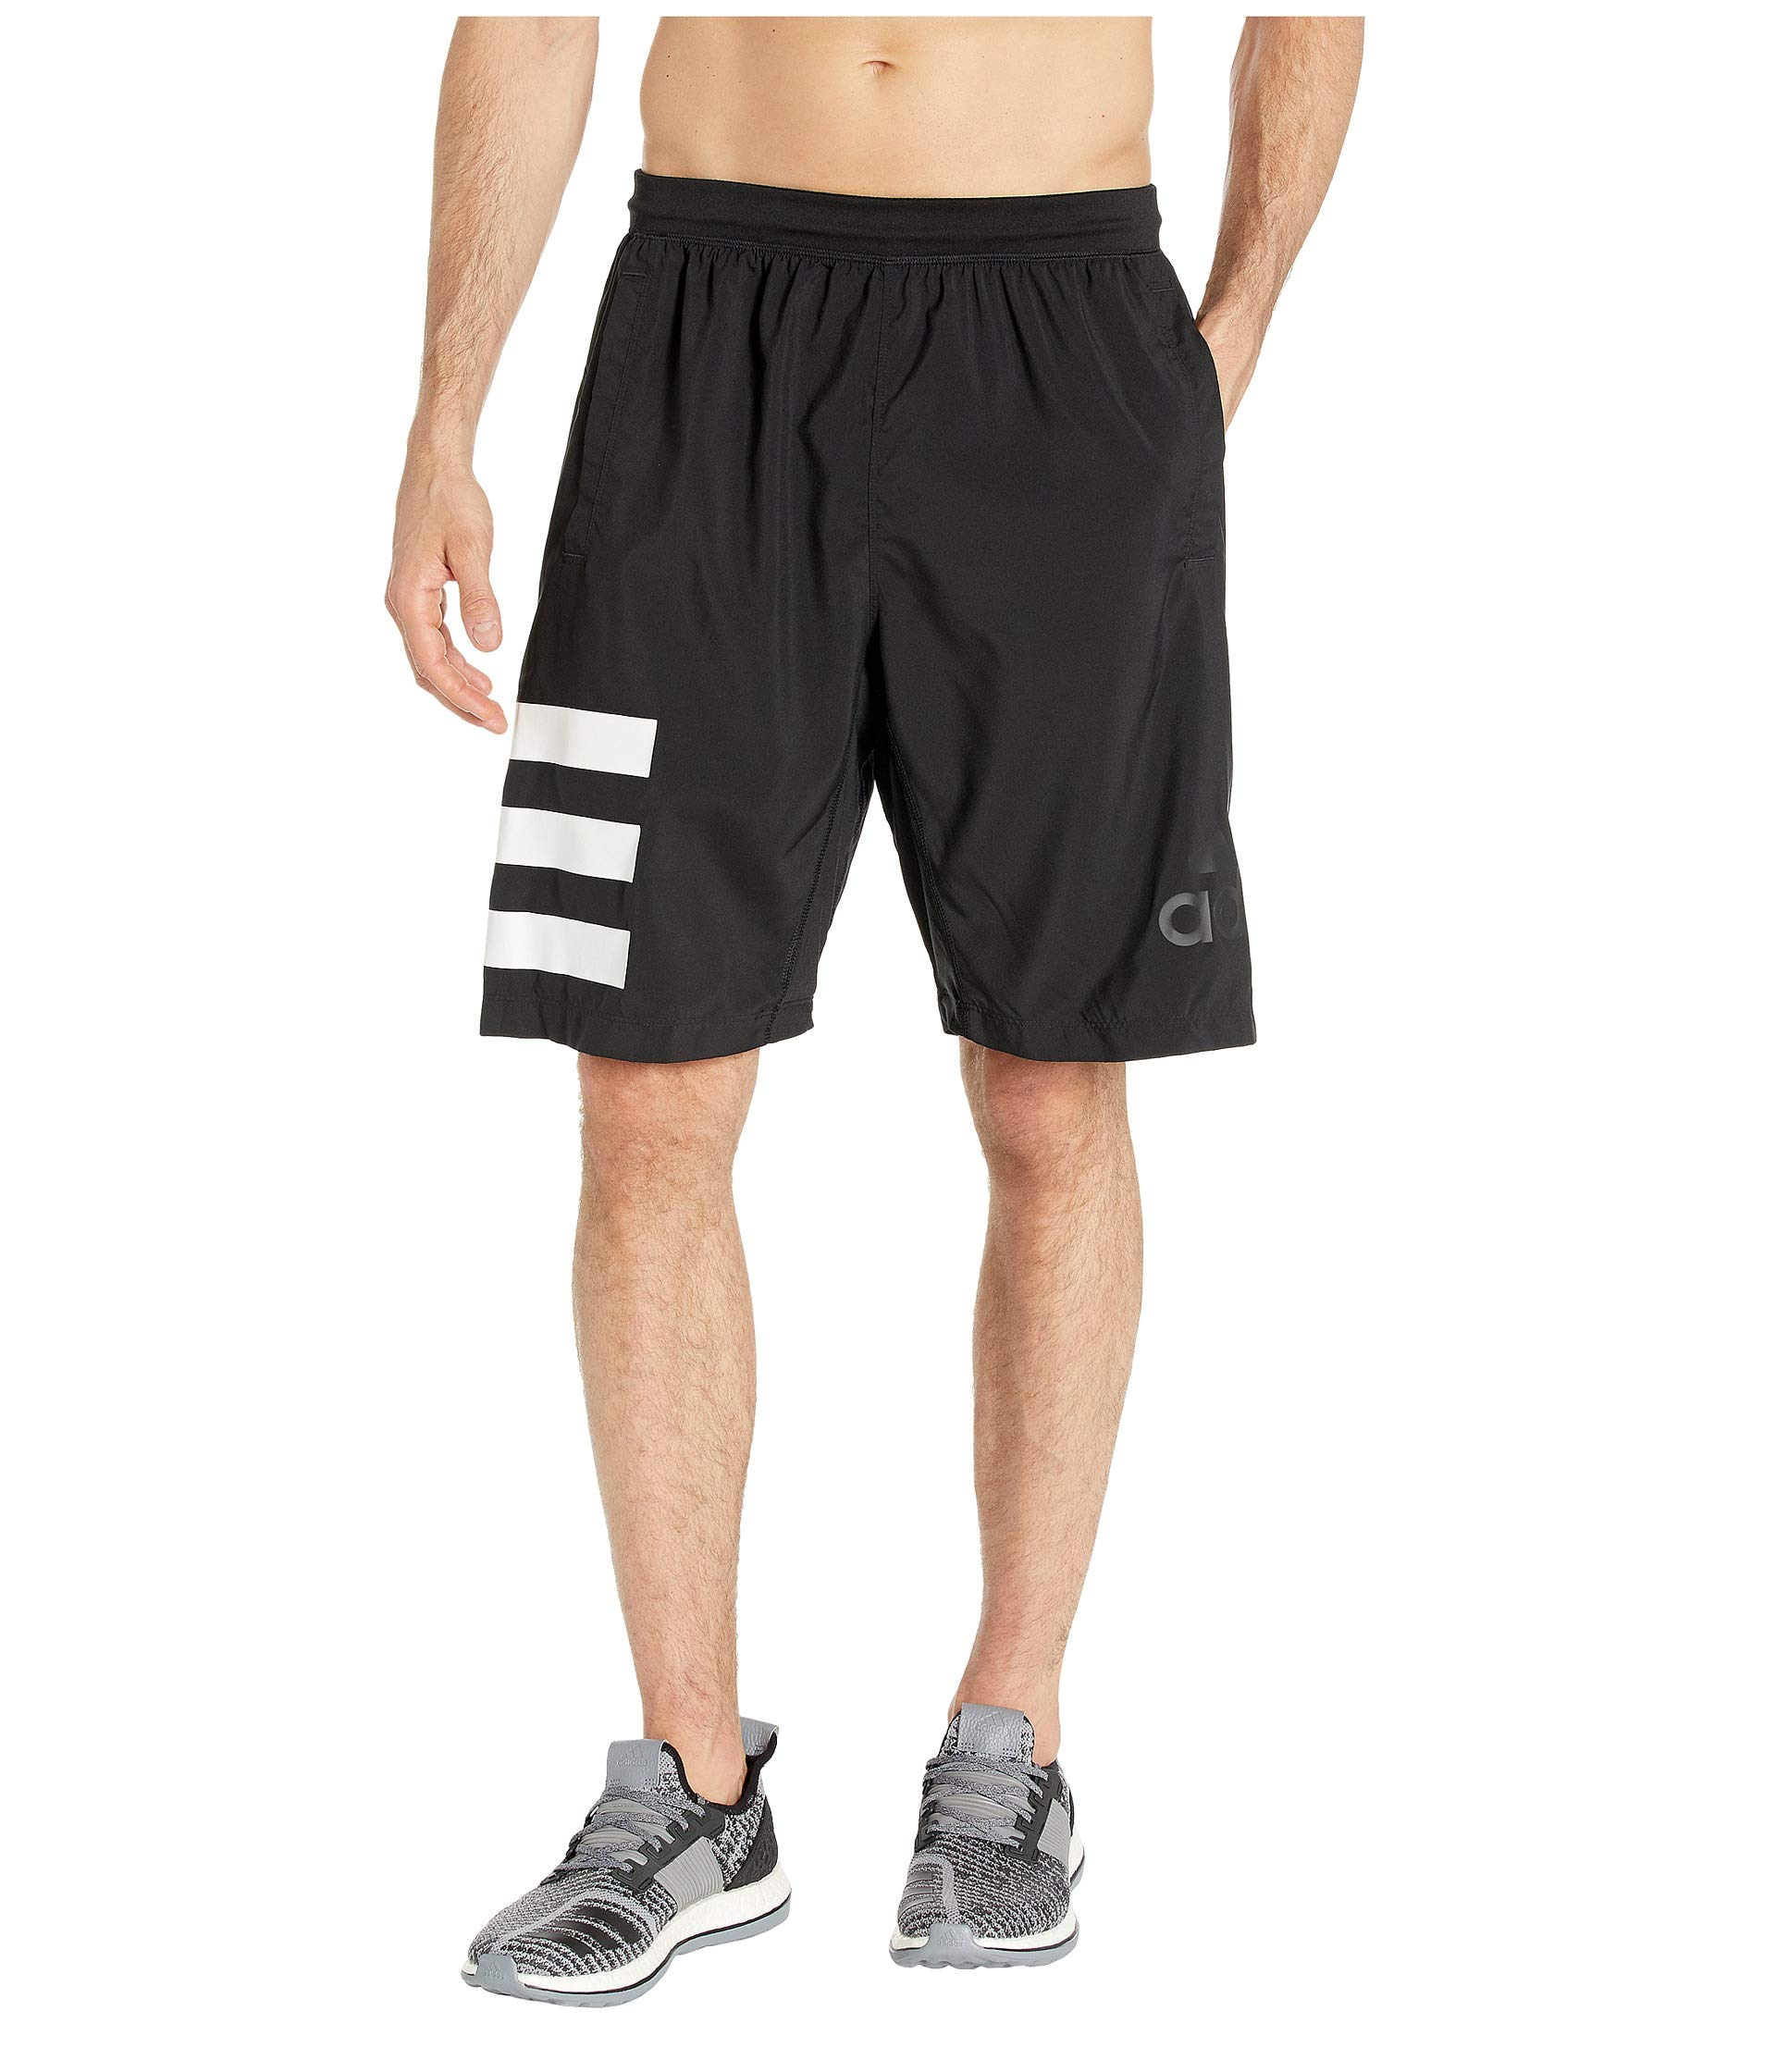 adidas Men's Tennis Club 9-Inch Shorts, Black/White, Small